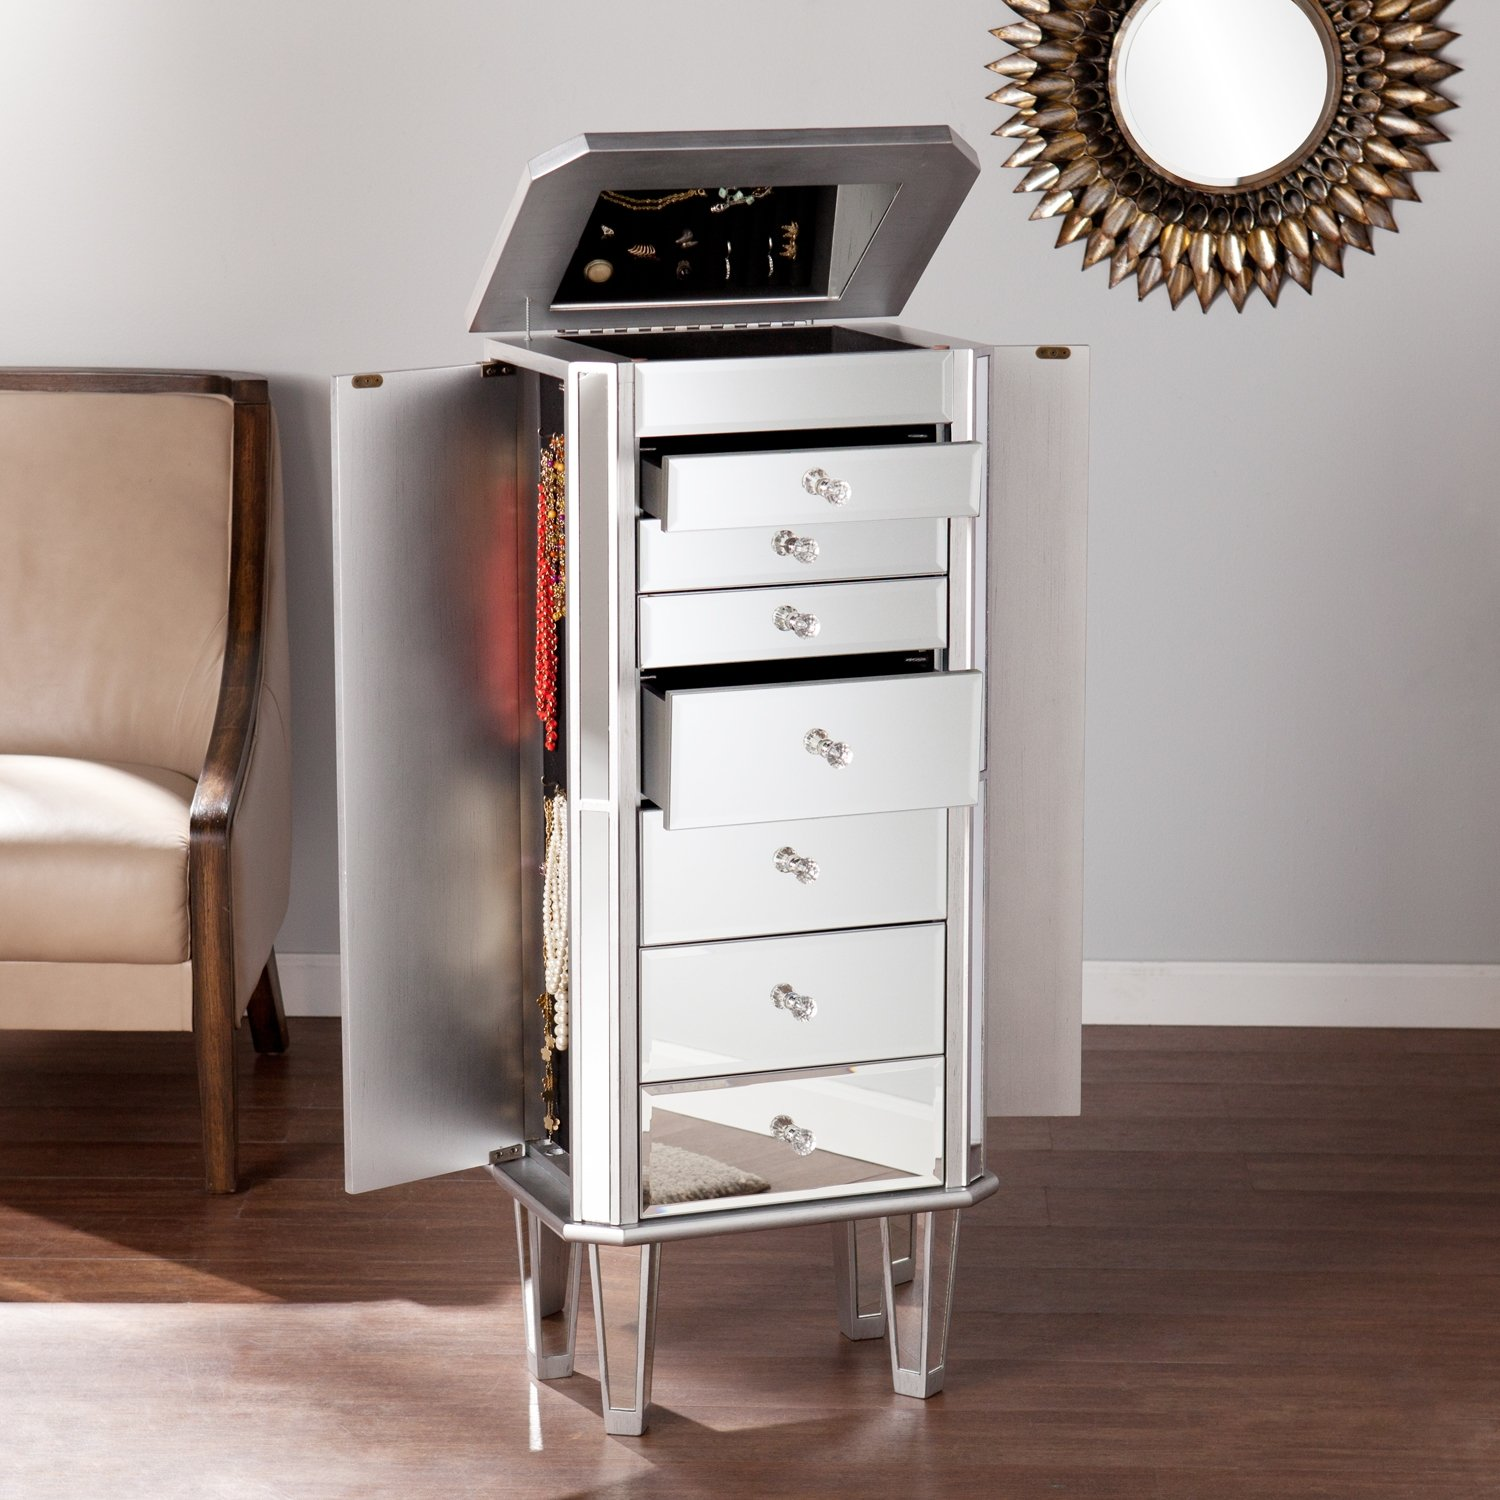 Amazoncom Margaux Mirrored Jewelry Armoire Jewelry